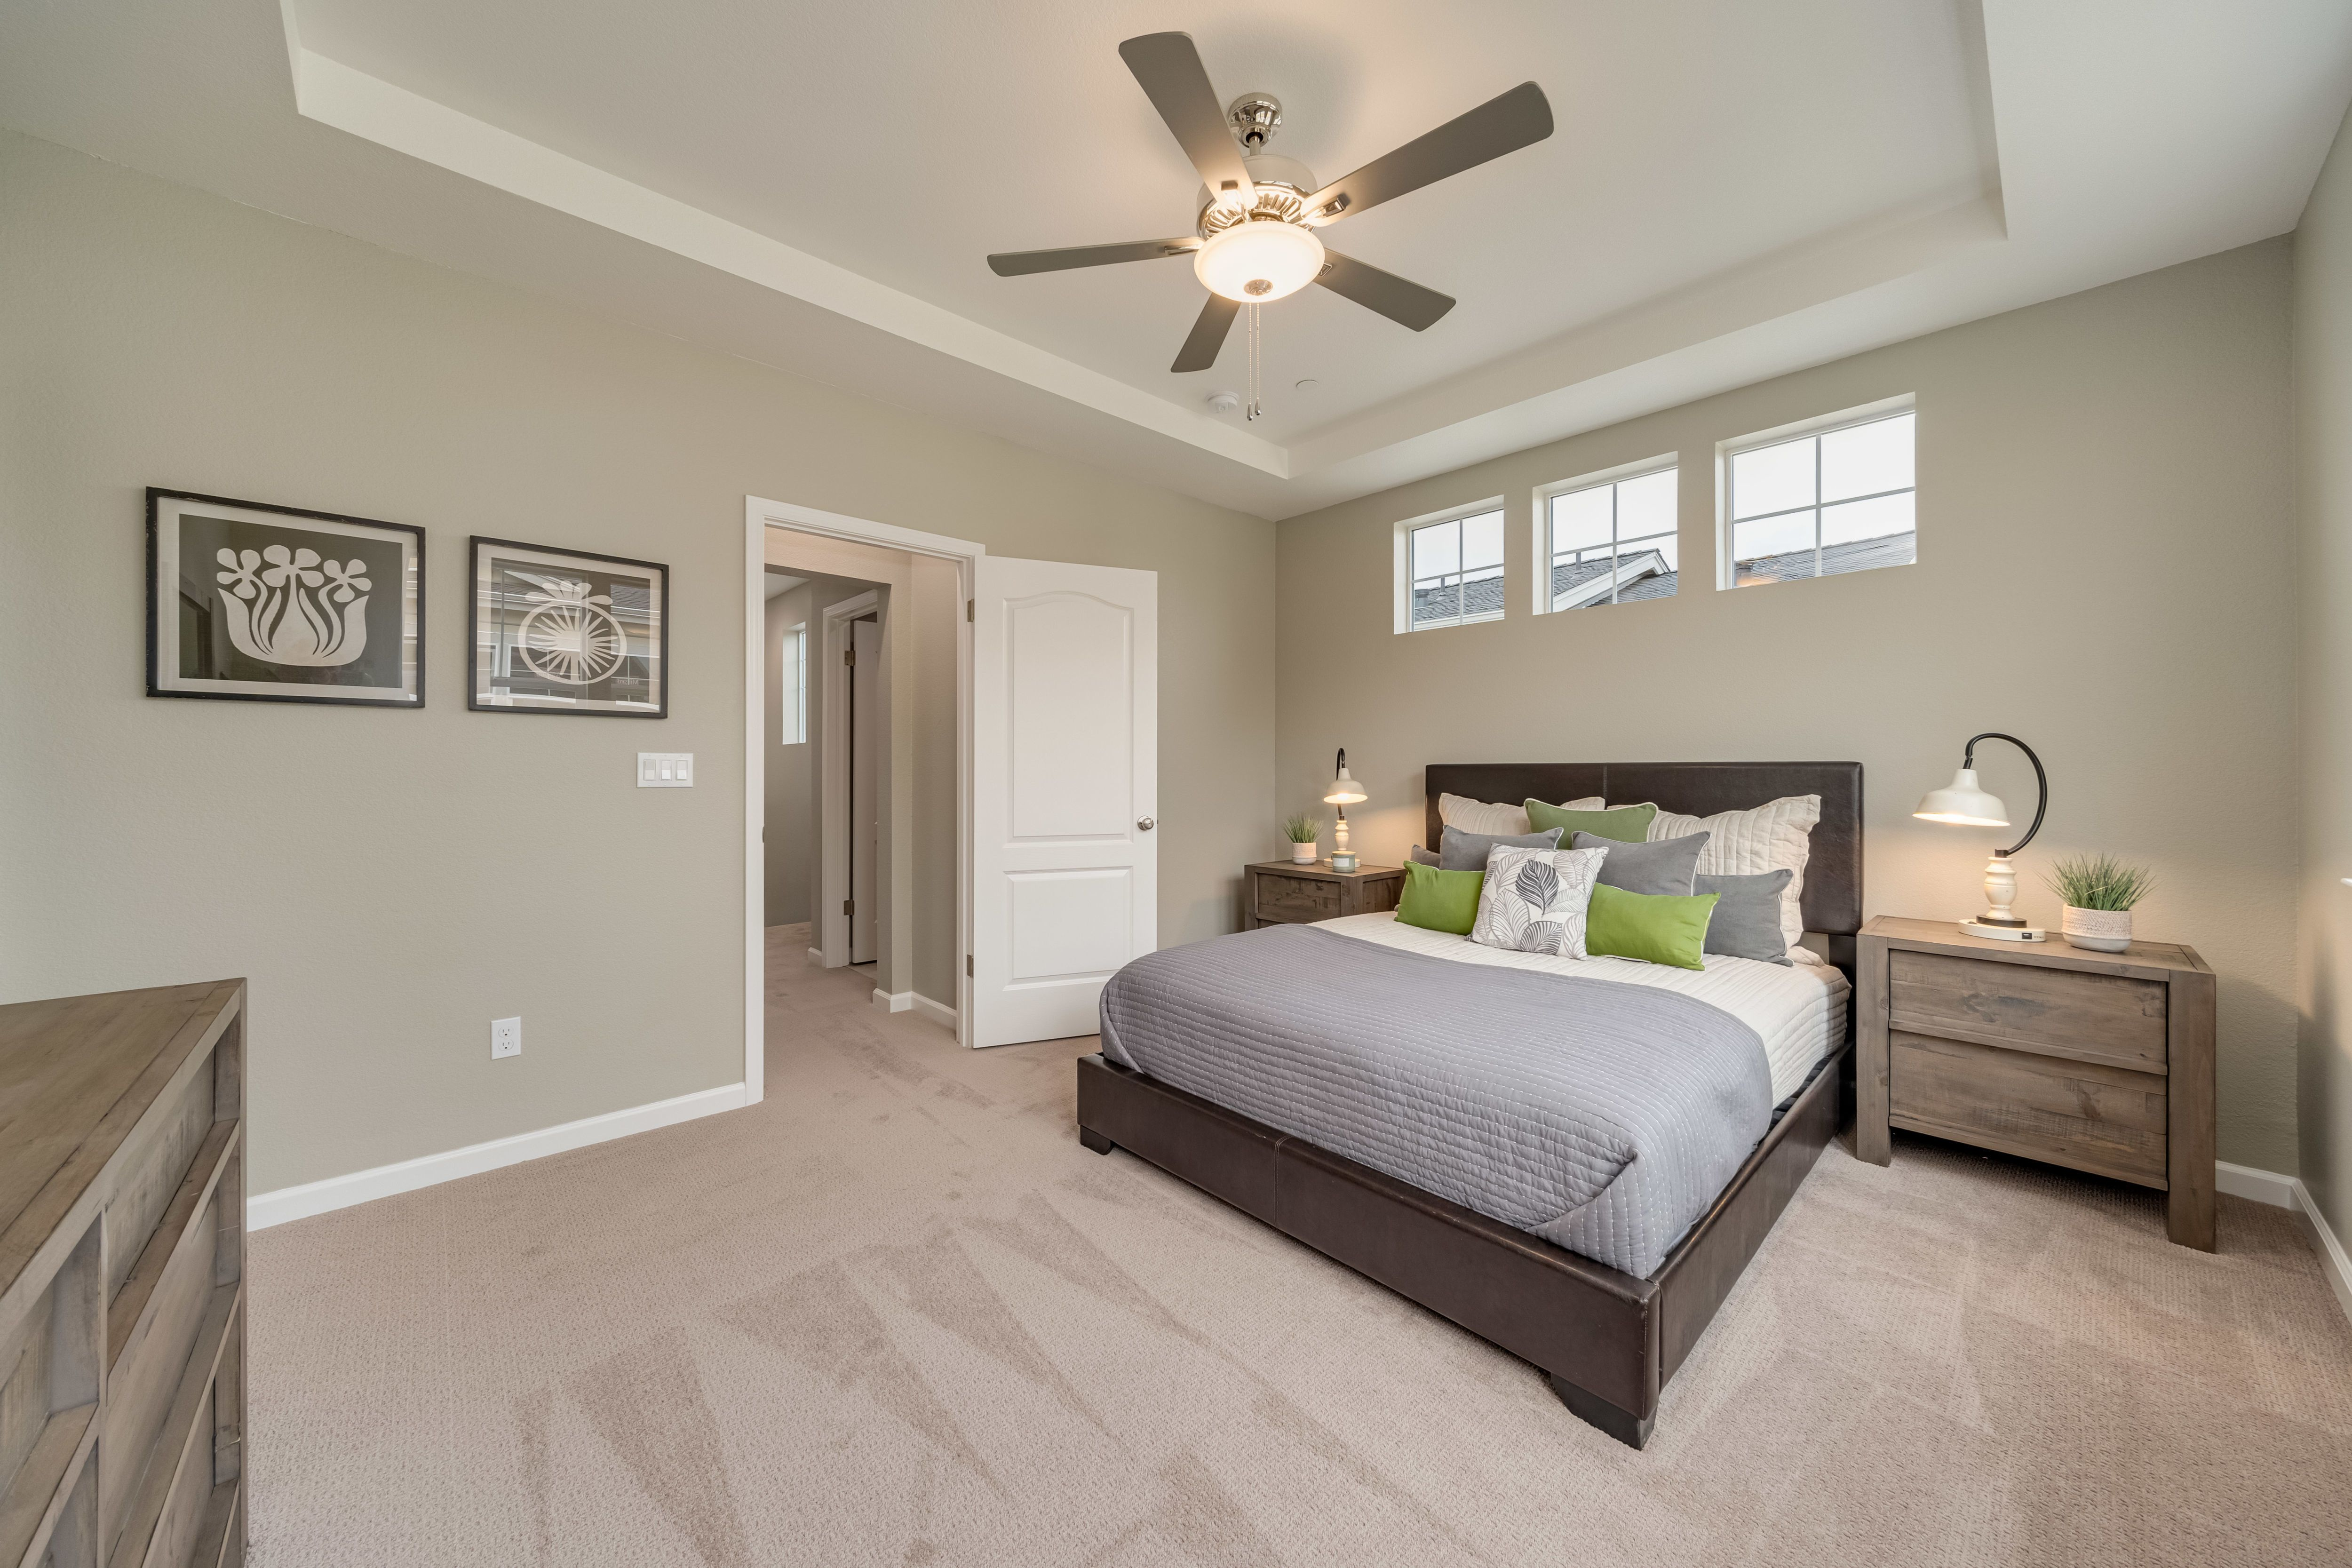 Bedroom featured in the Plan 5E By W Marketing in Santa Rosa, CA